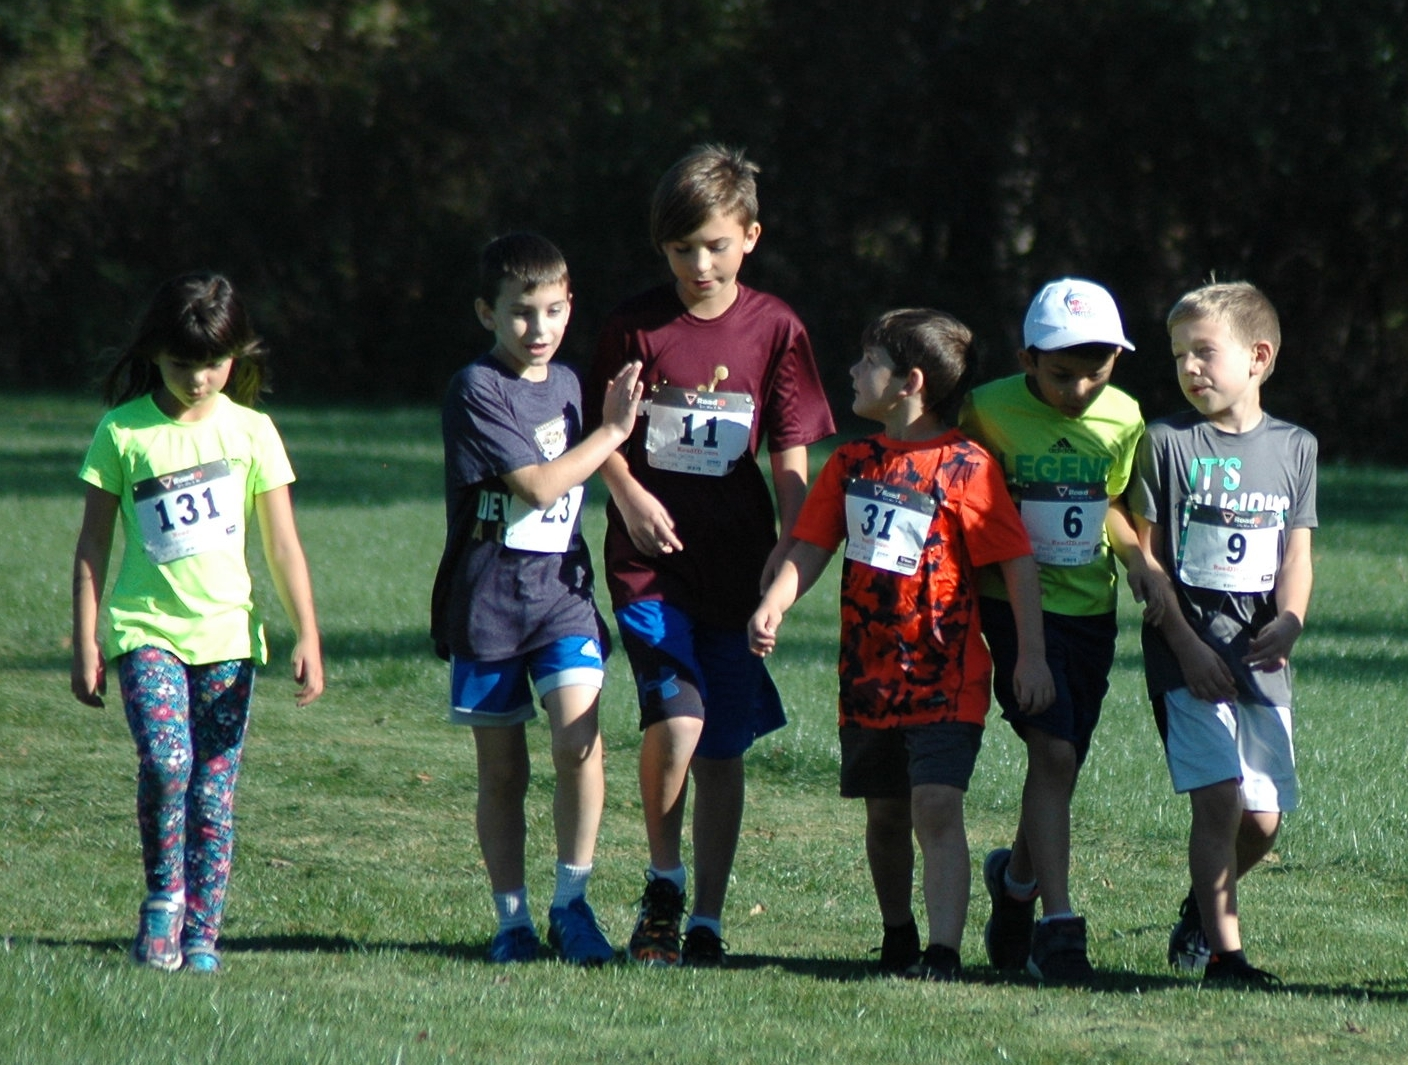 Our young runners support each other!